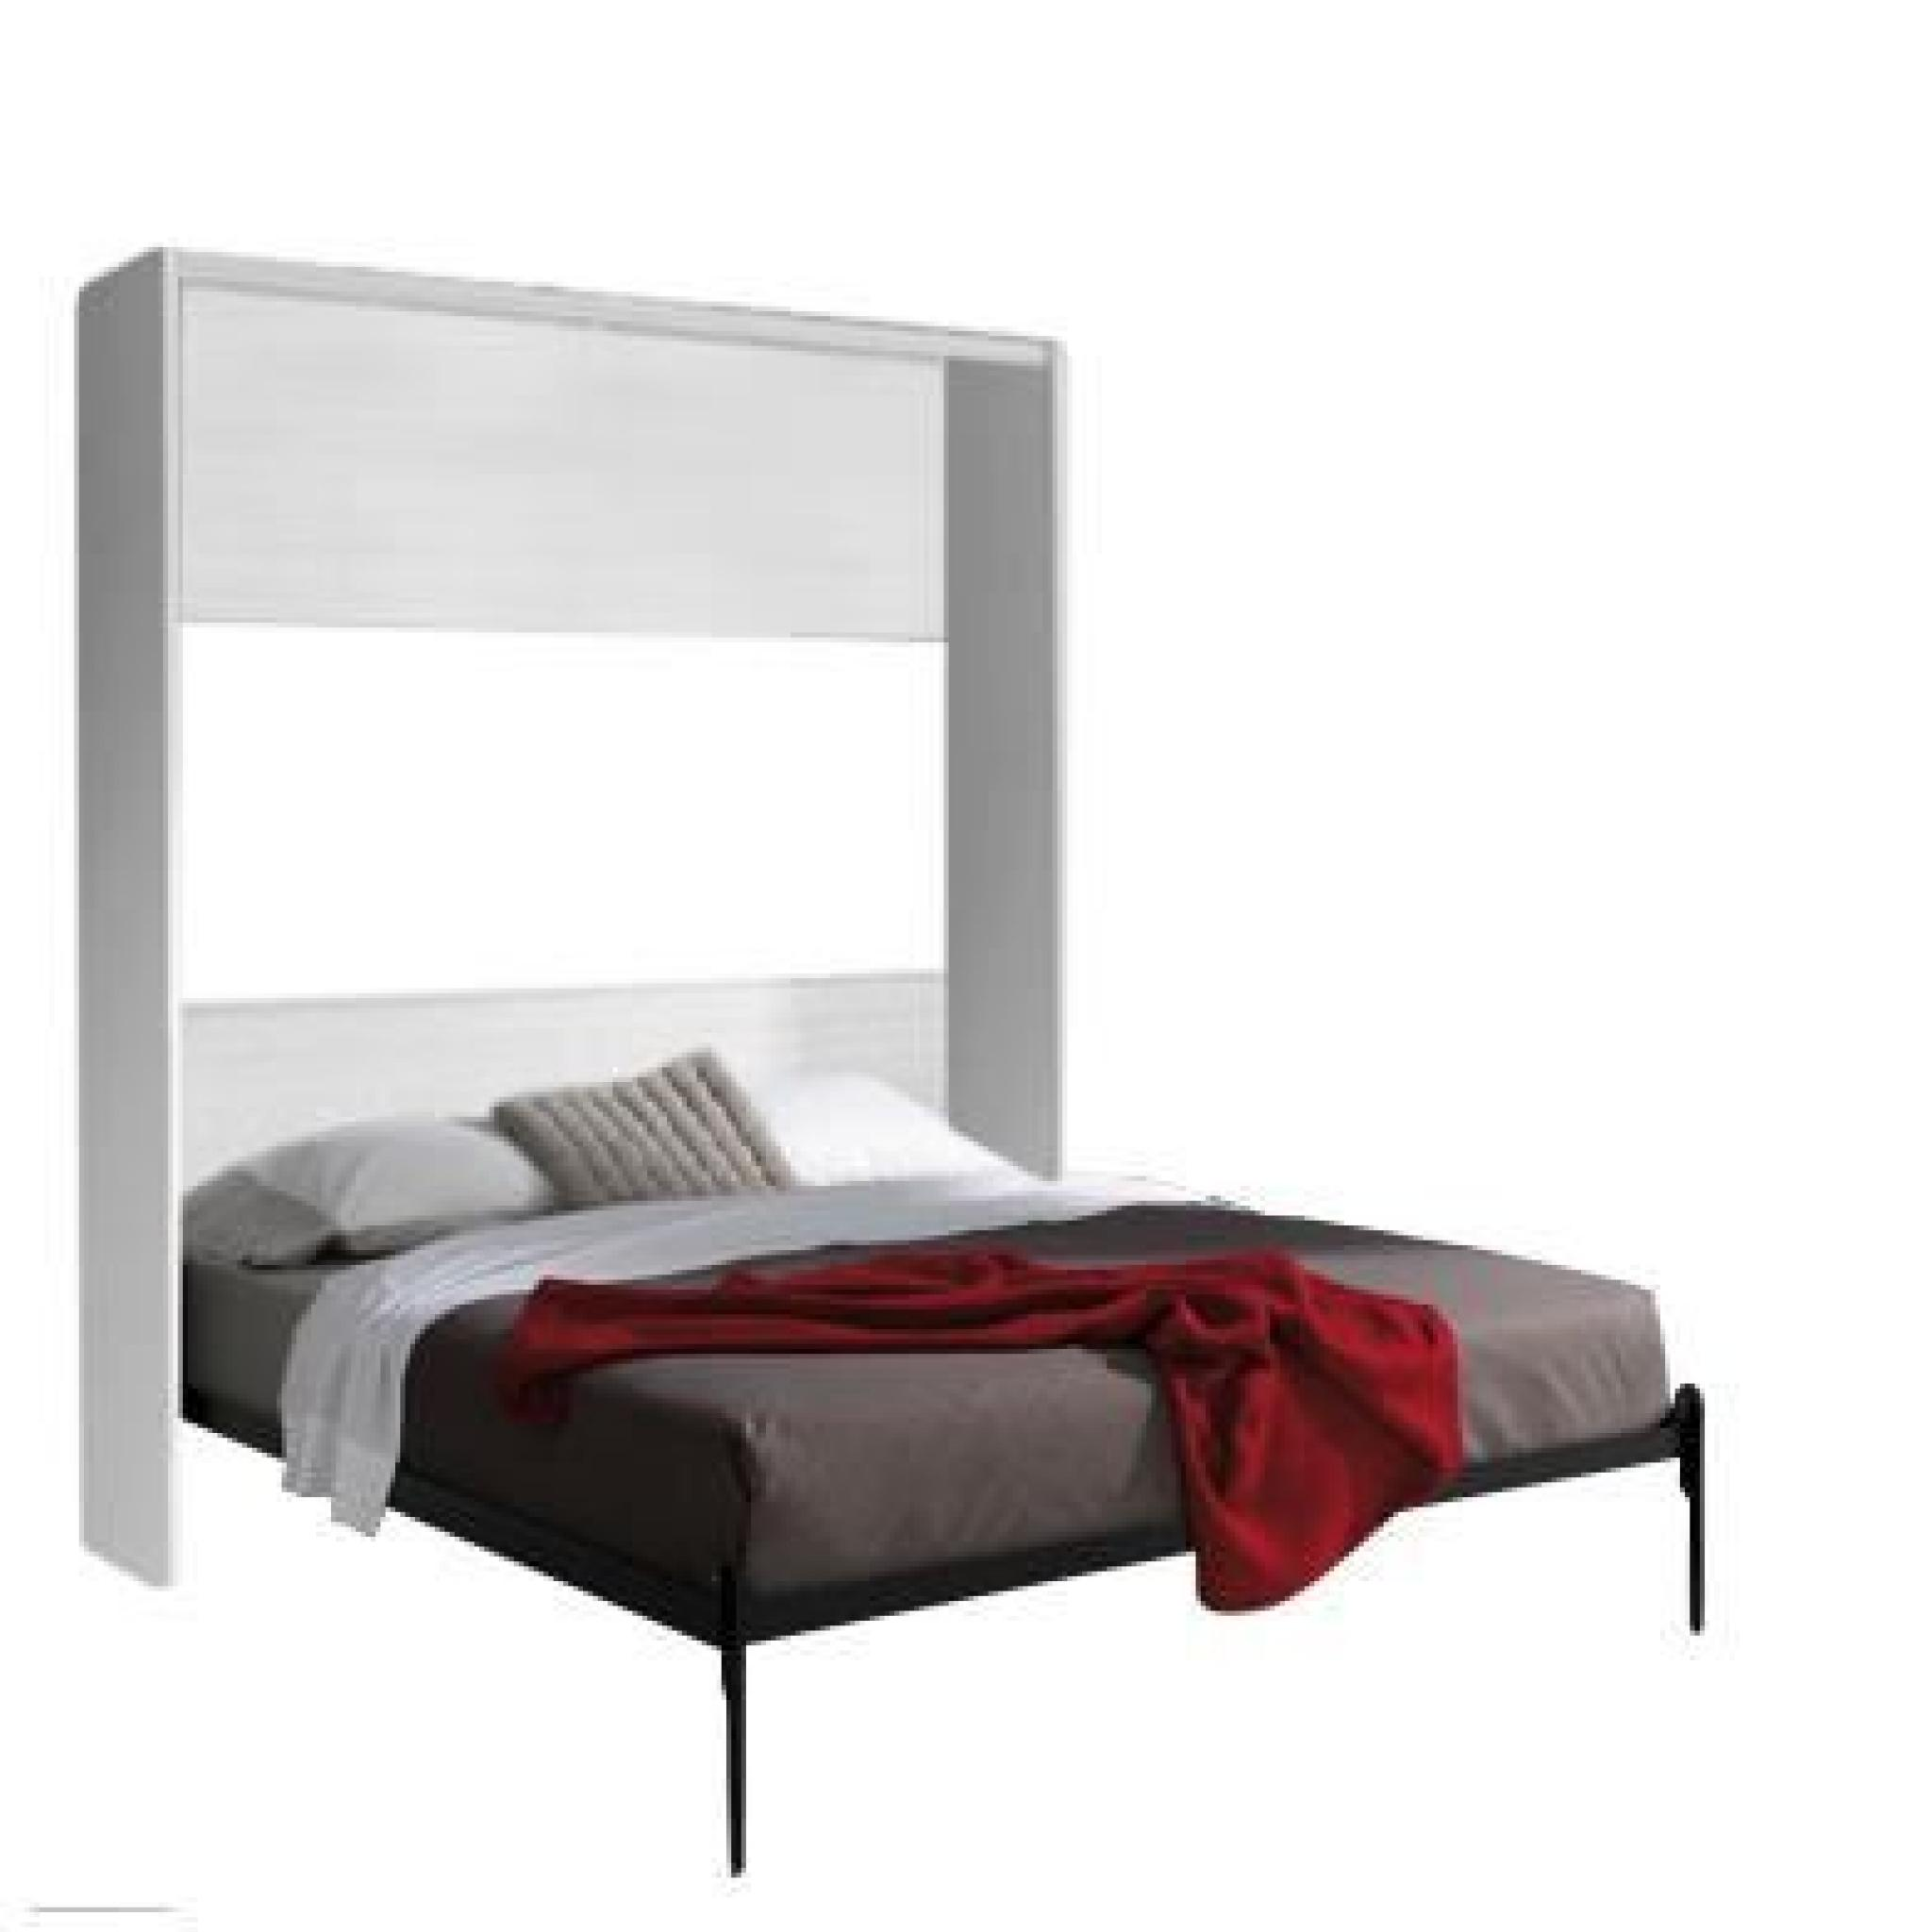 armoire lit escamotable fleet verticale 160x200cm achat. Black Bedroom Furniture Sets. Home Design Ideas